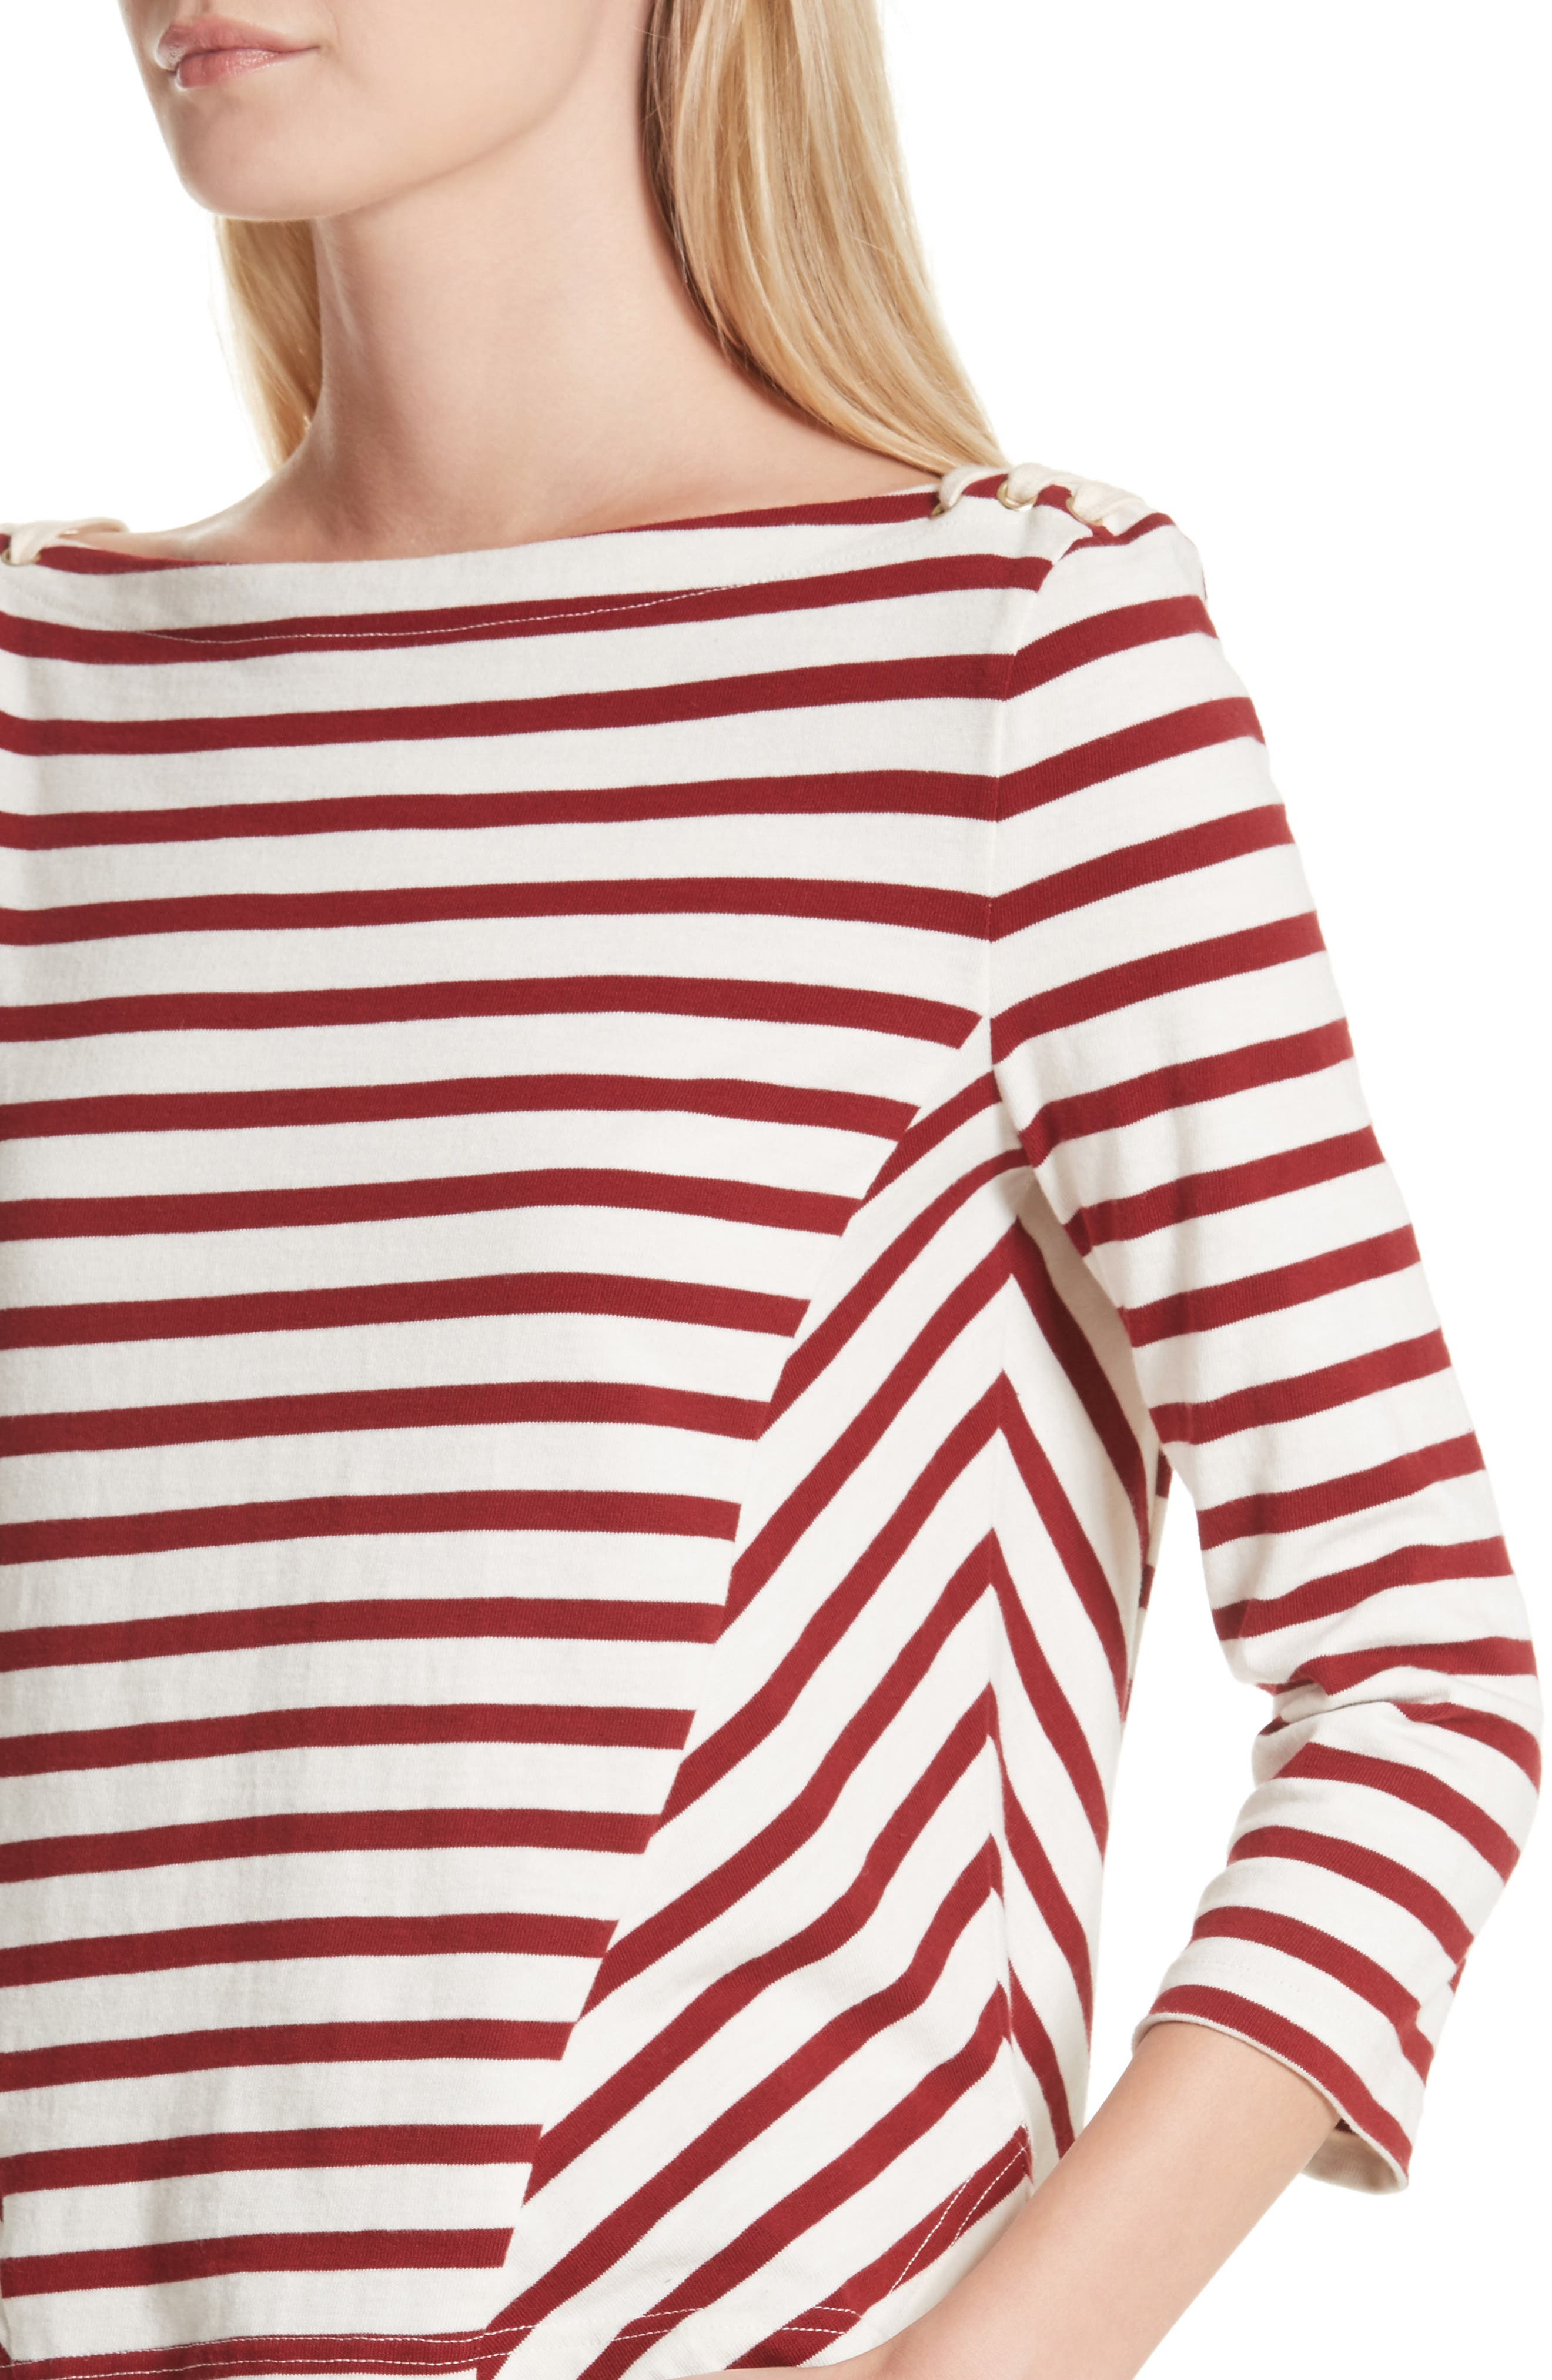 Lincoln Mariner Top,                             Alternate thumbnail 4, color,                             Ecru/ Red